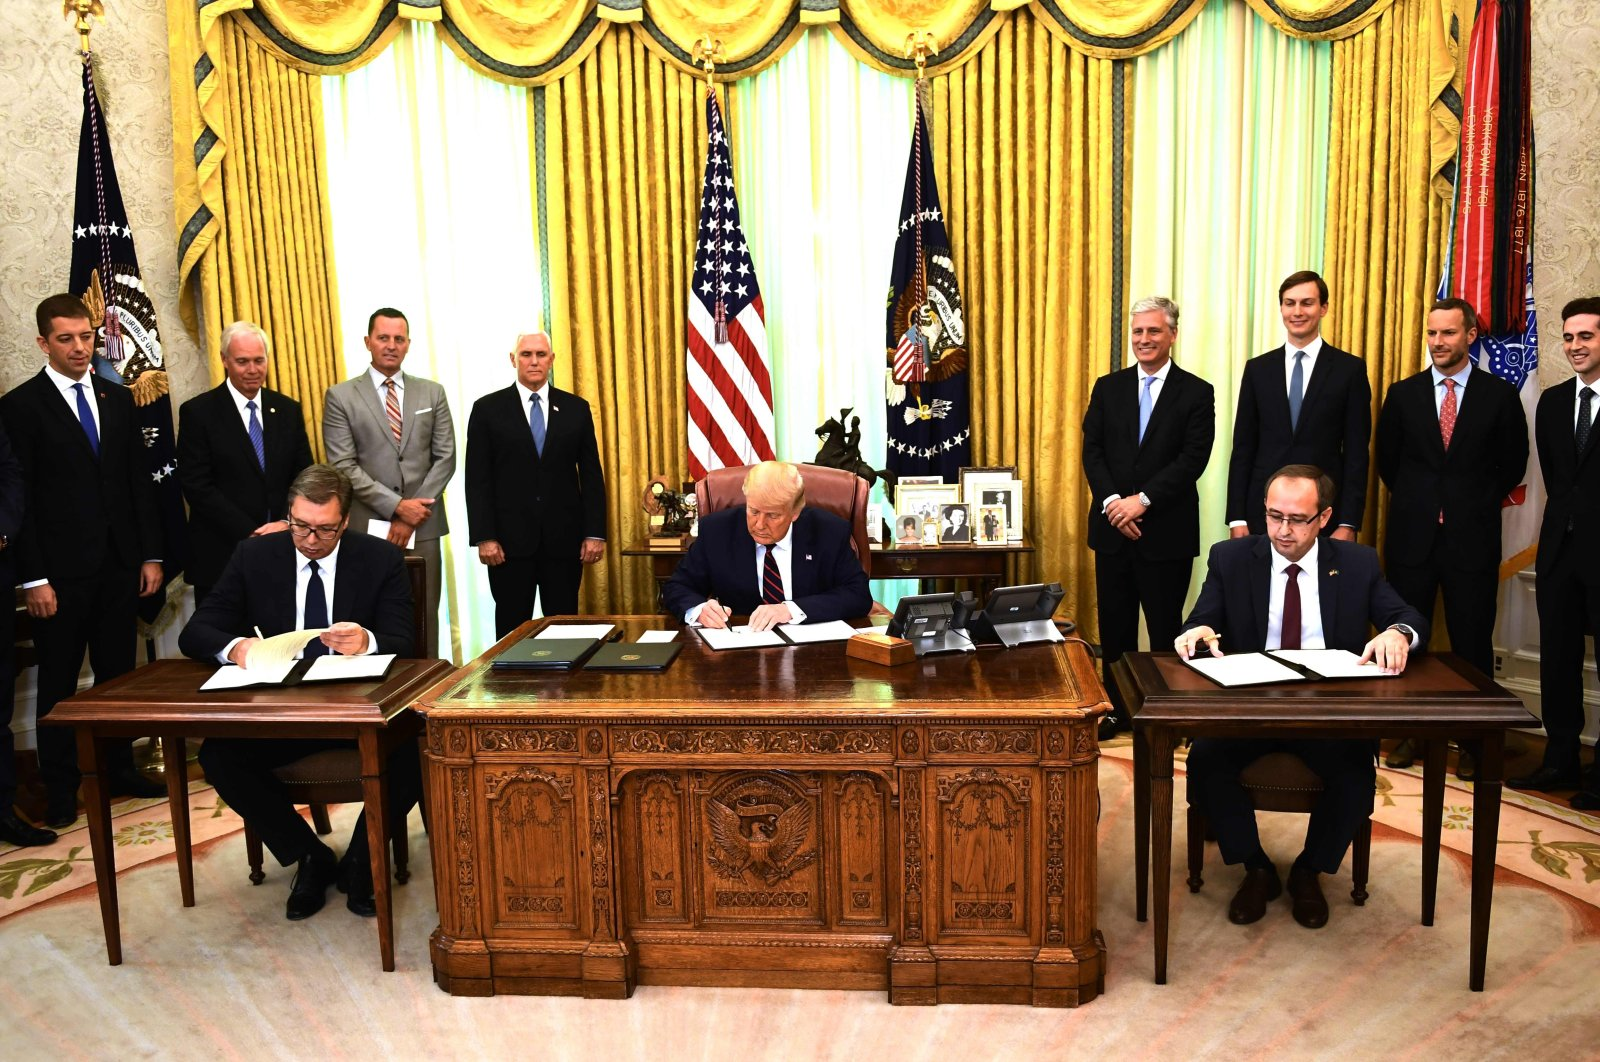 U.S. President Donald Trump signs a document as Kosovar Prime Minister Avdullah Hoti (R) and Serbian President Aleksandar Vucic (L)  sign an agreement on opening economic relations, in the Oval Office of the White House in Washington, D.C., on Sept. 4, 2020. (AFP Photo)